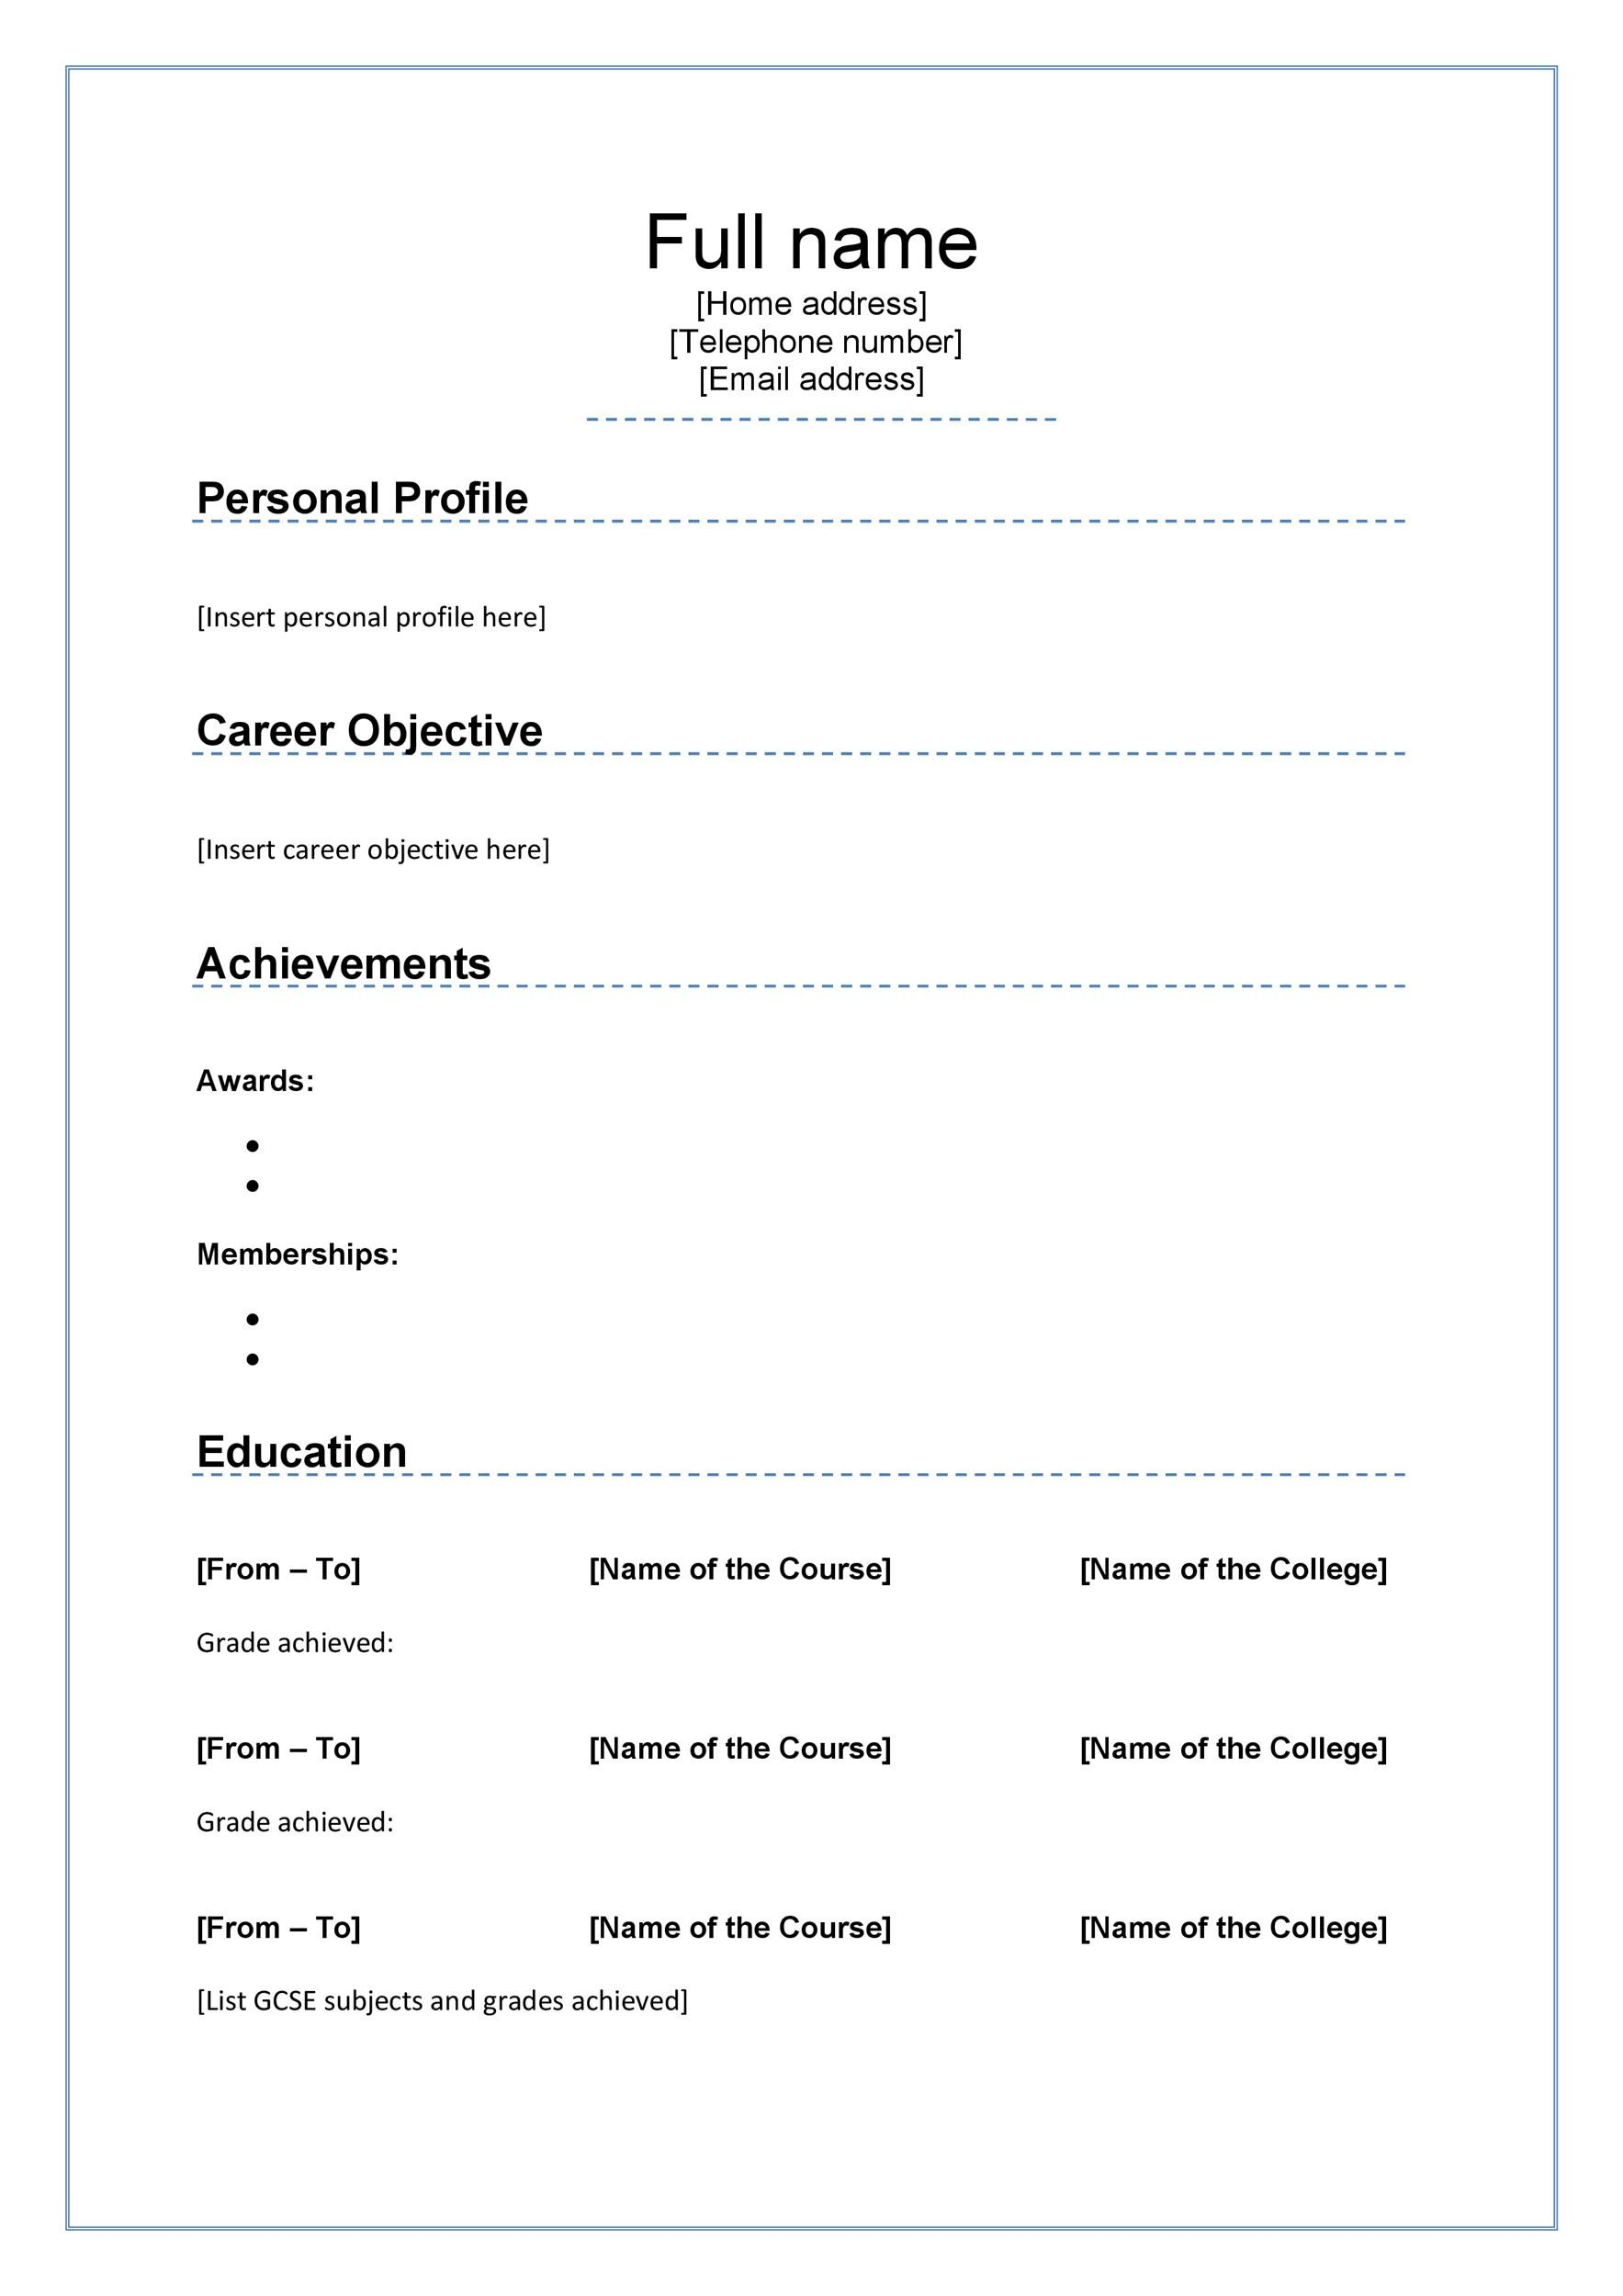 Curriculum Vitae Template Word Interesting 48 Great Curriculum Vitae